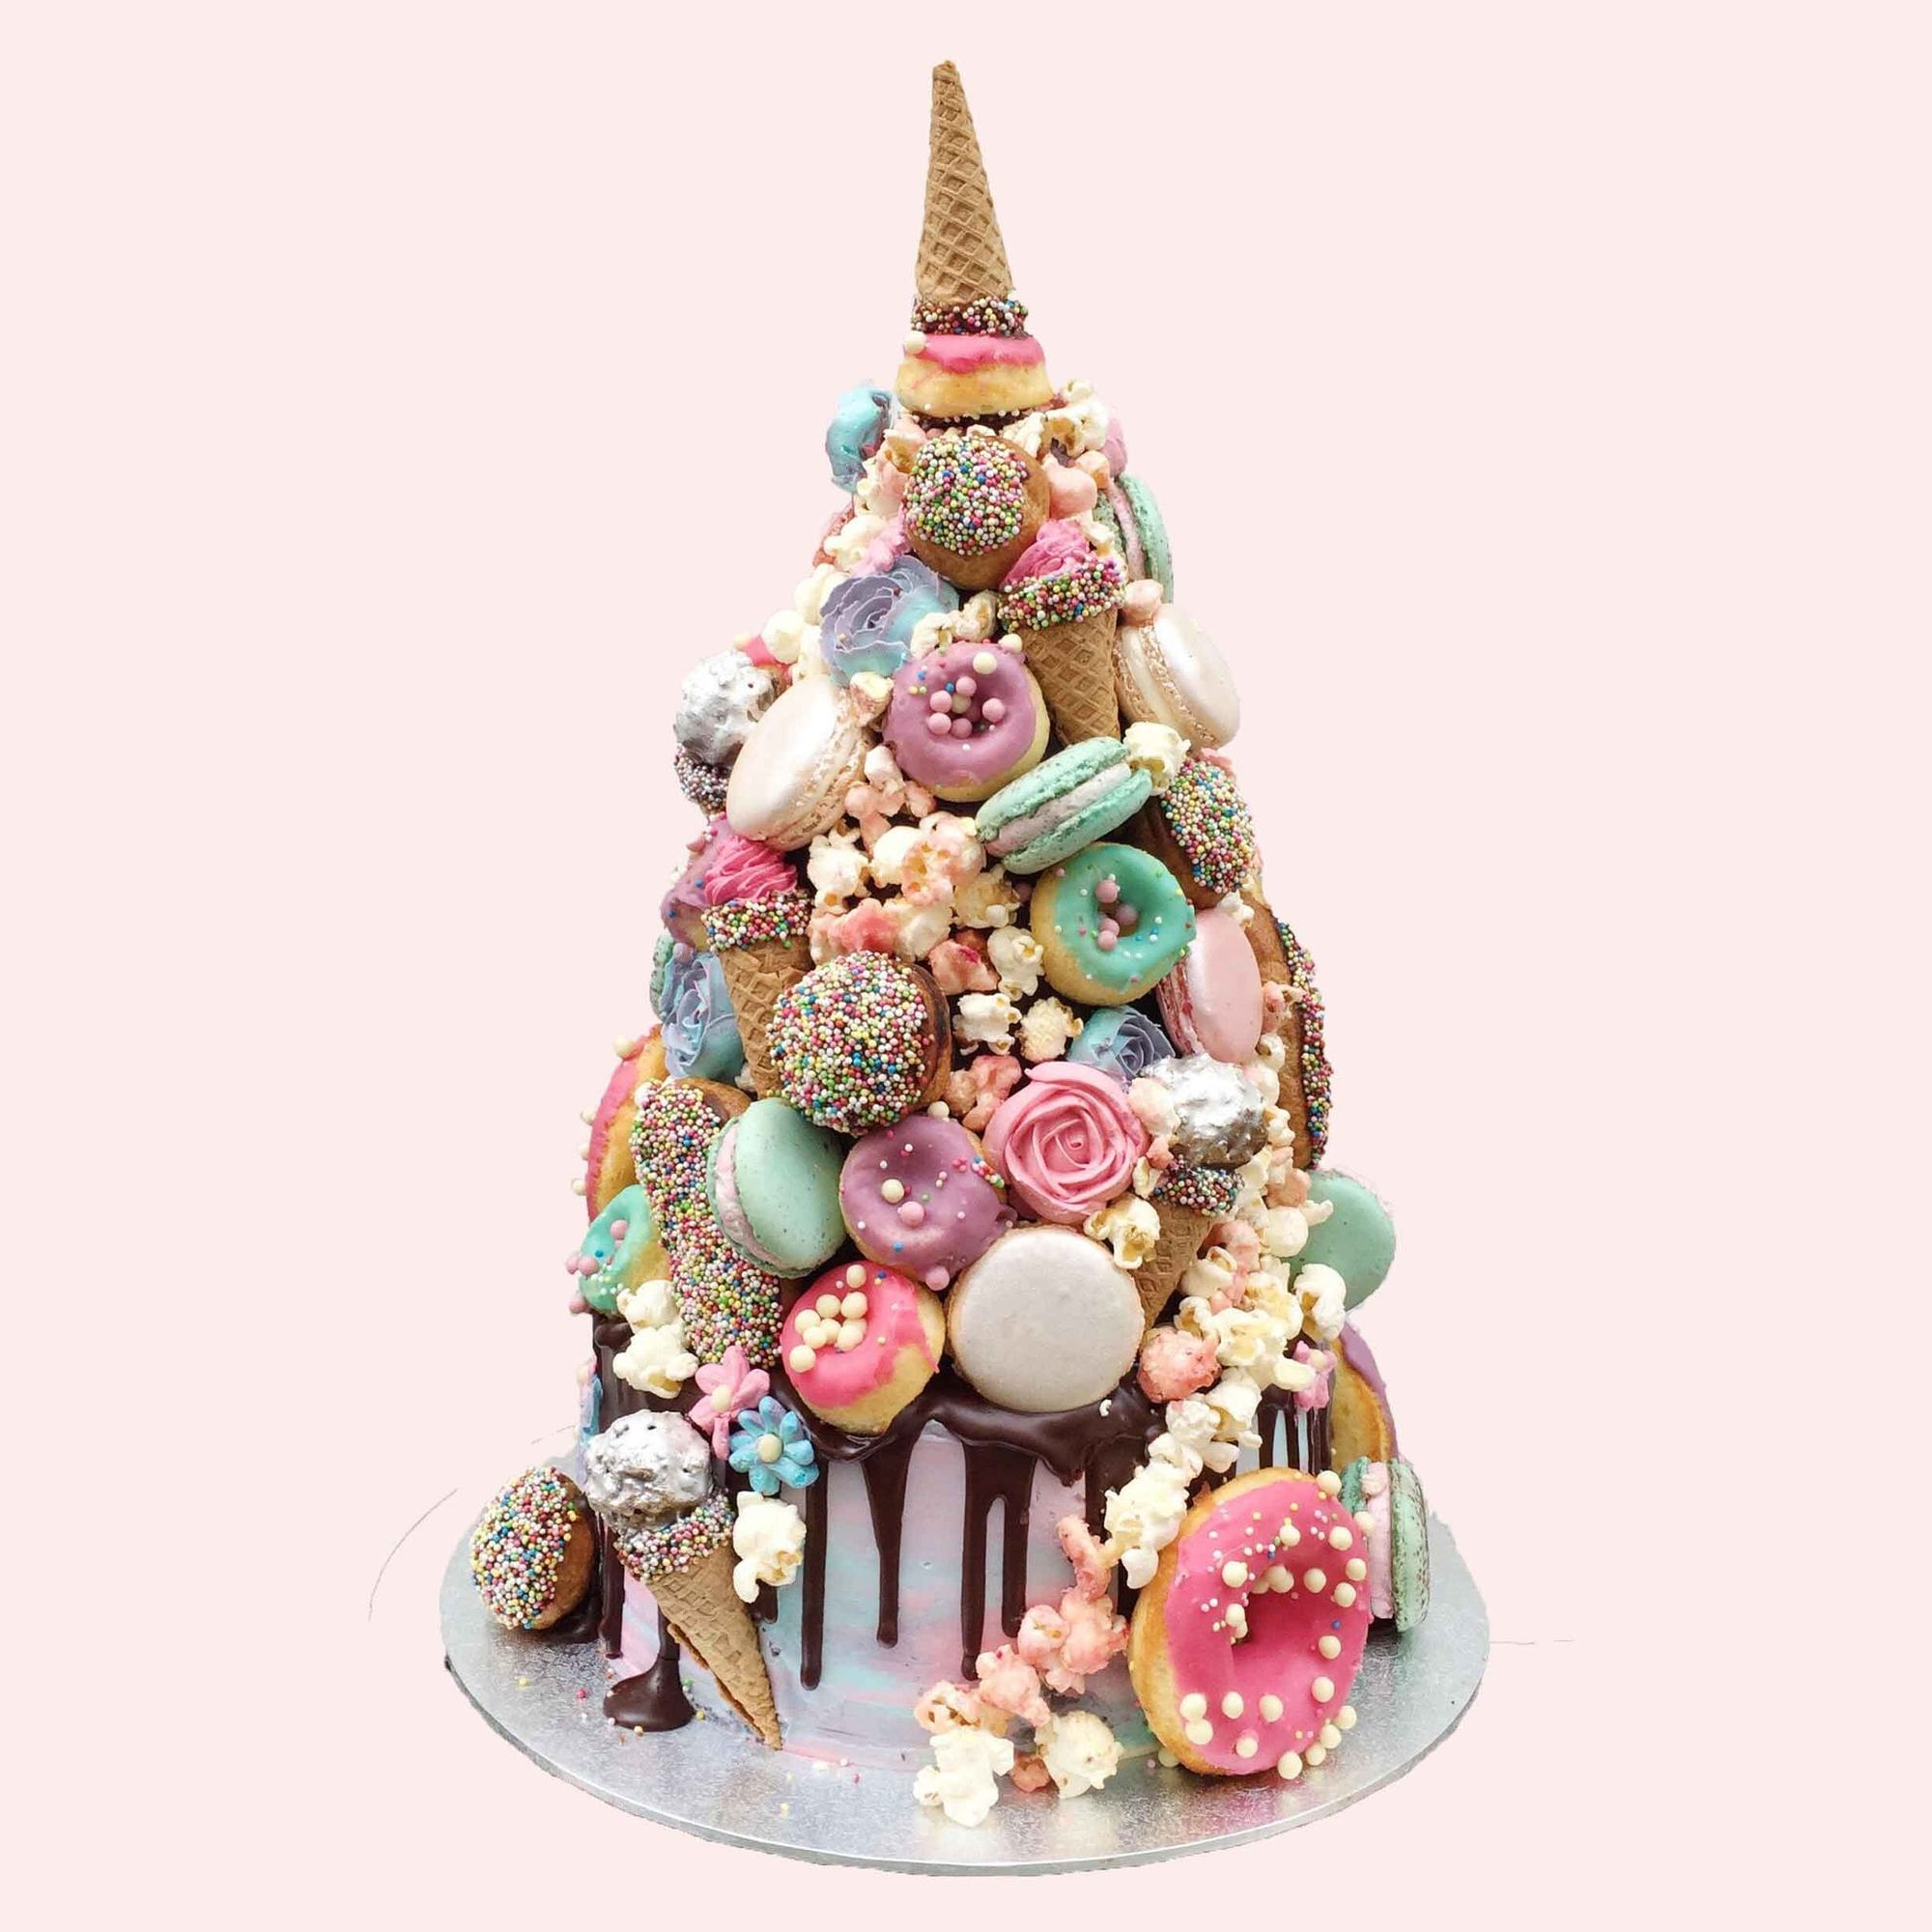 Anges de Sucre's take on a croquembouche. Cake tower piled with donuts, piped flowers, macarons, popcorn with a cornet 'unicorn horn' on top.